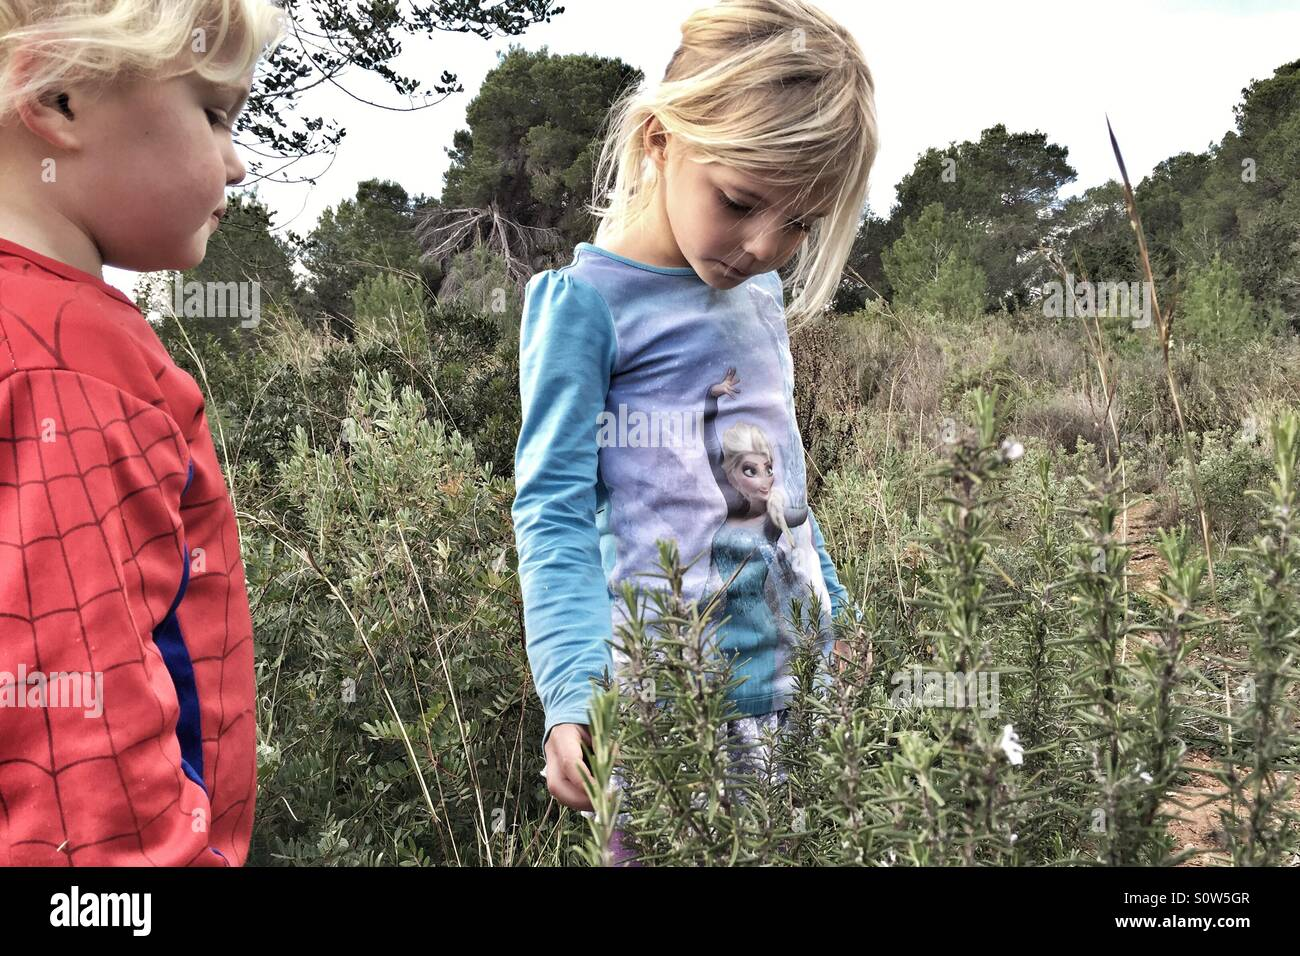 Kids in nature - Stock Image